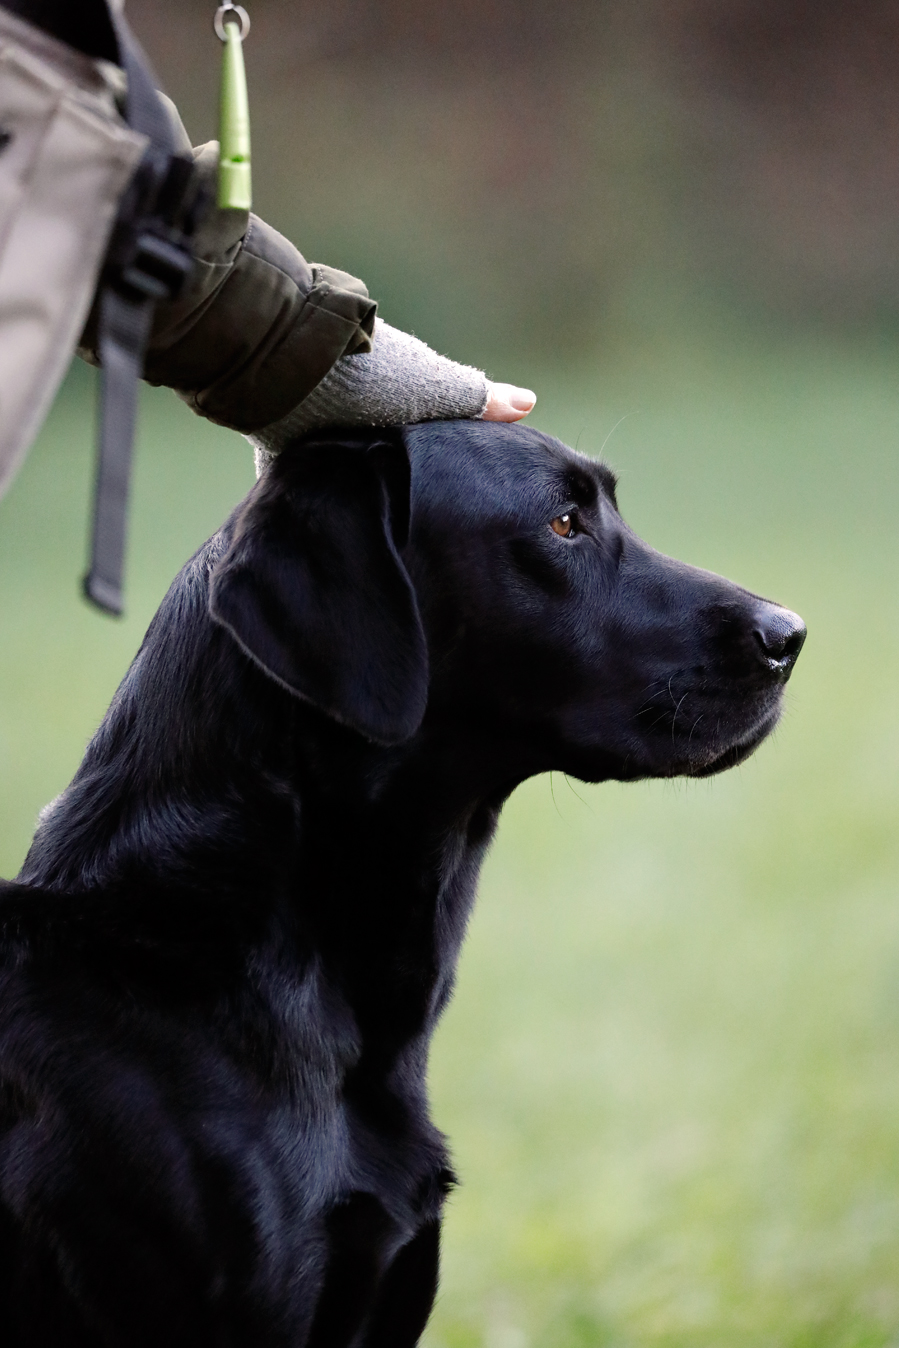 Field sports photography. Labrador retriever praised by owner.